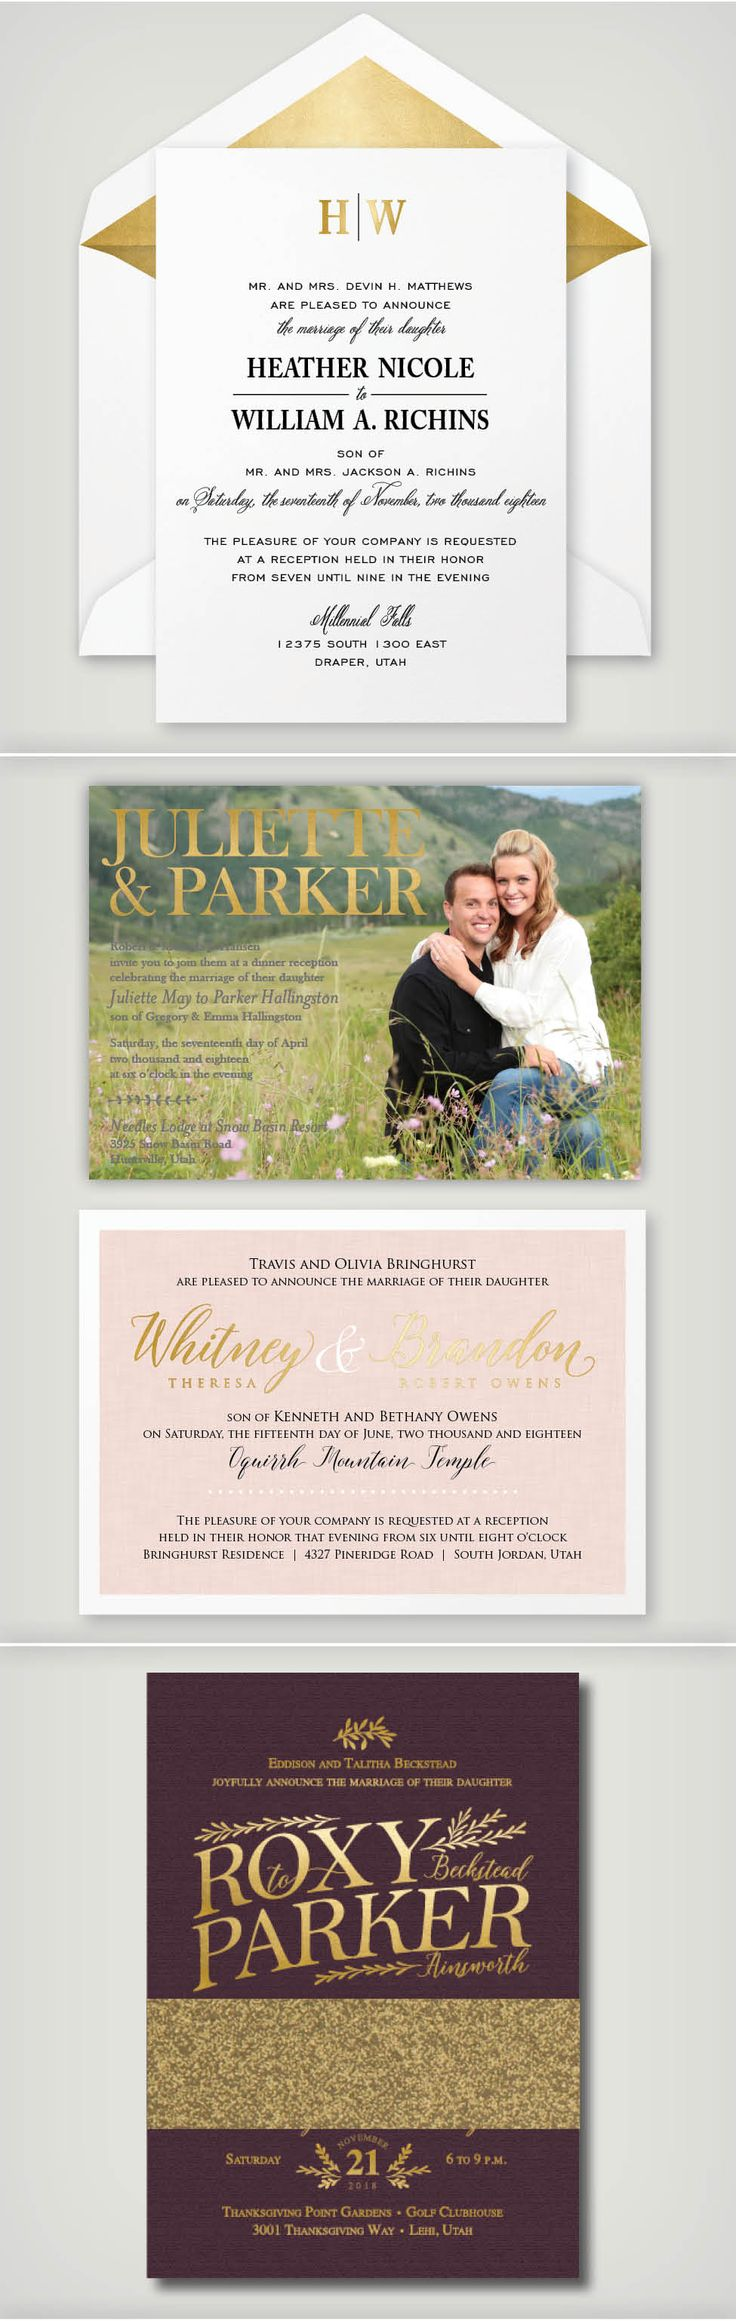 custom wedding invitations nashville%0A Foil Wedding Invitations styled any way you u    d like  An elegant look that is  truly timeless  Click on the link for pricing information  foil wedding